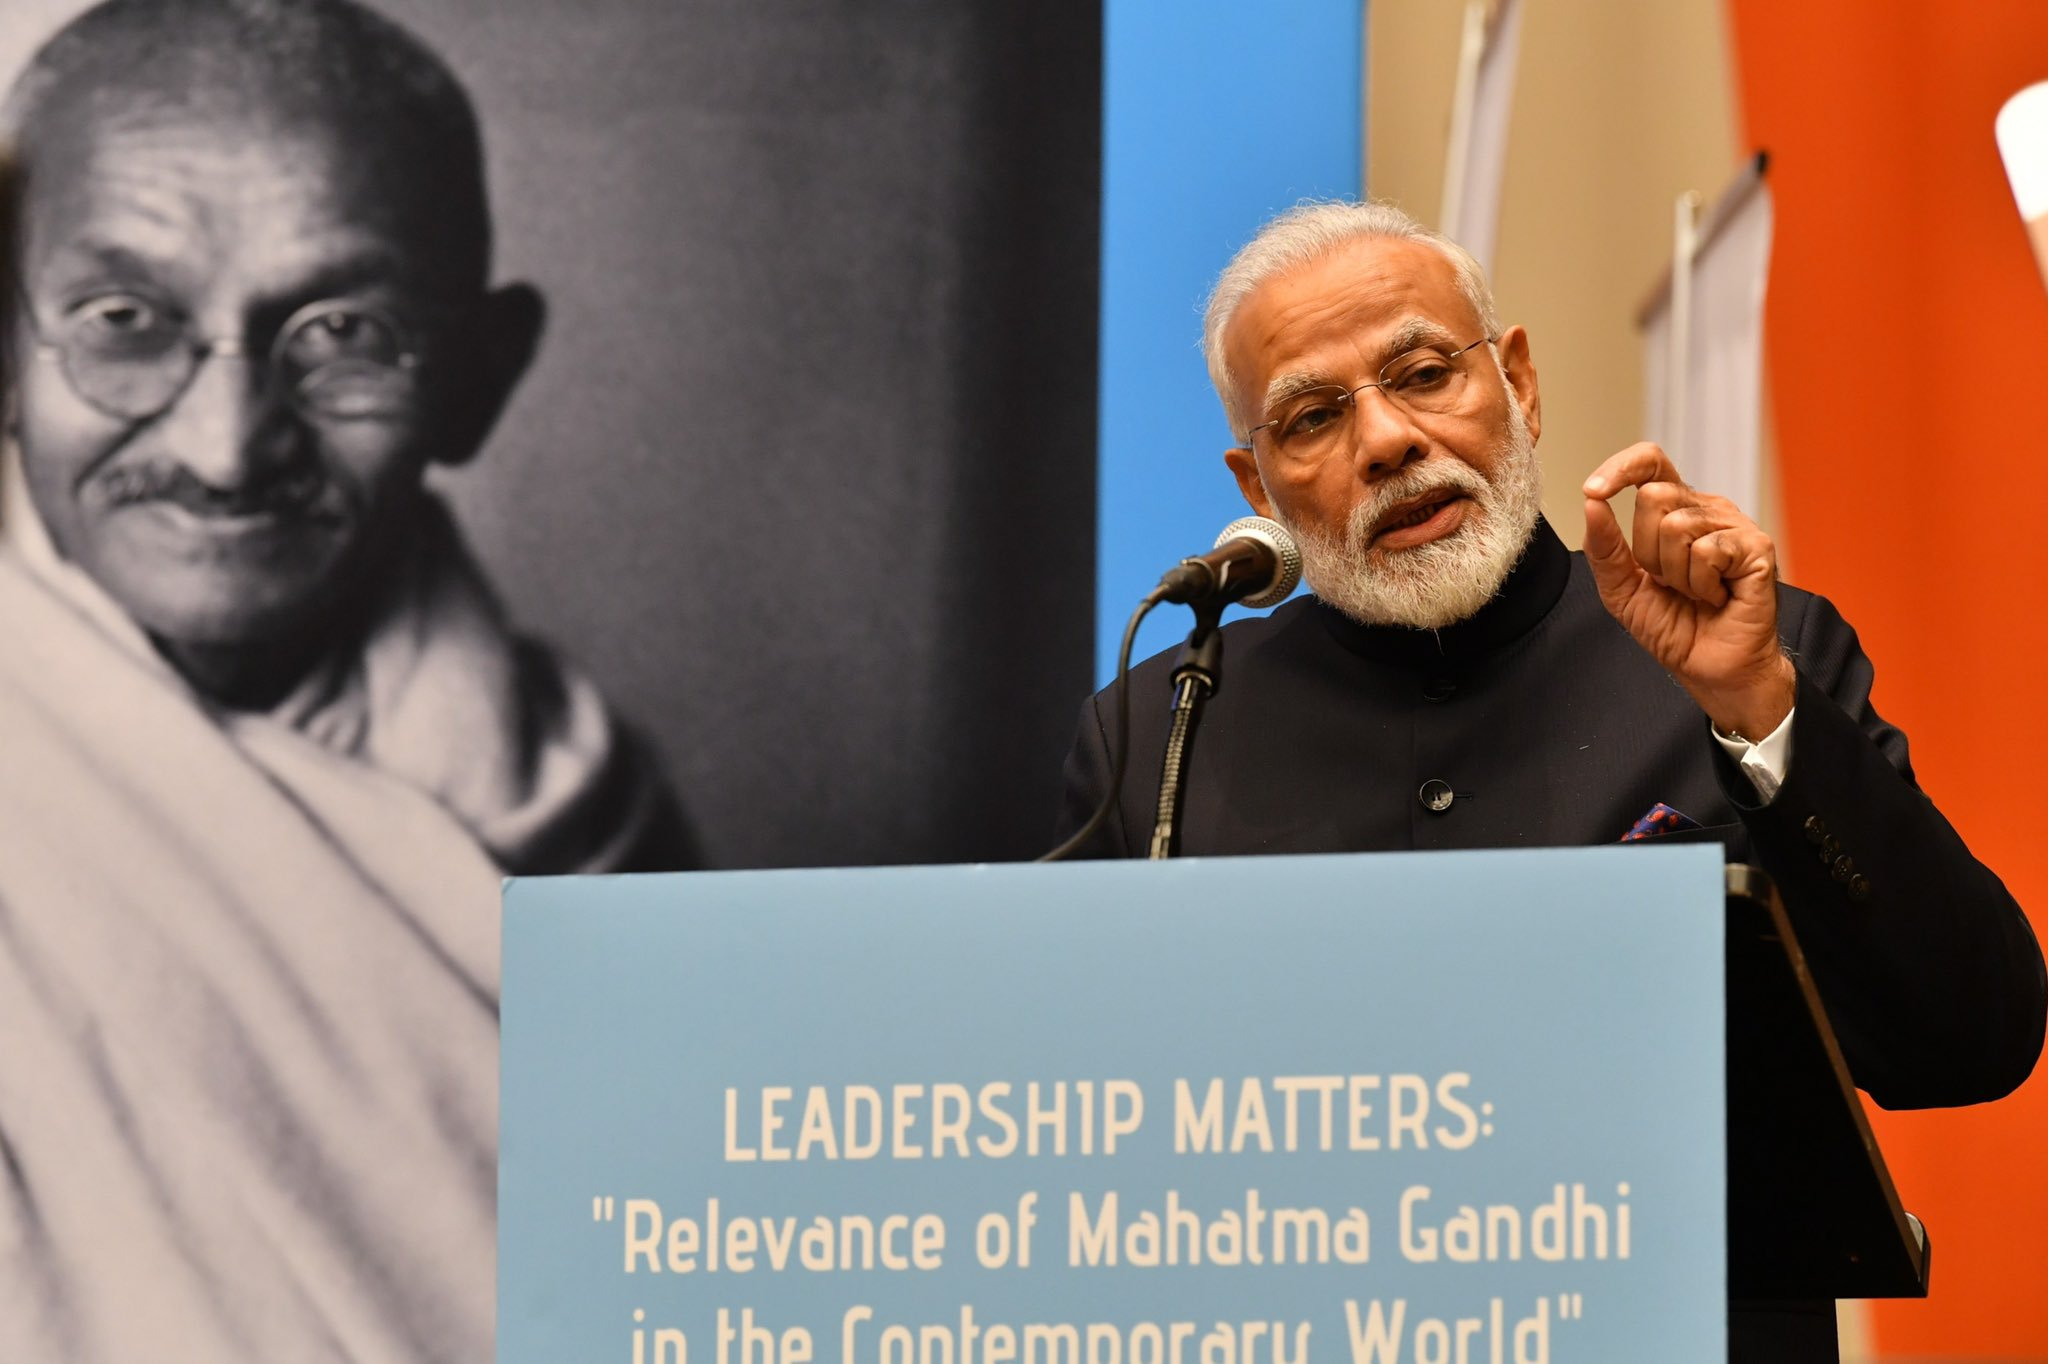 Narendra Modi speaking about Mahatma Gandhi in New York. Photo courtesy: Twitter/@narendramodi